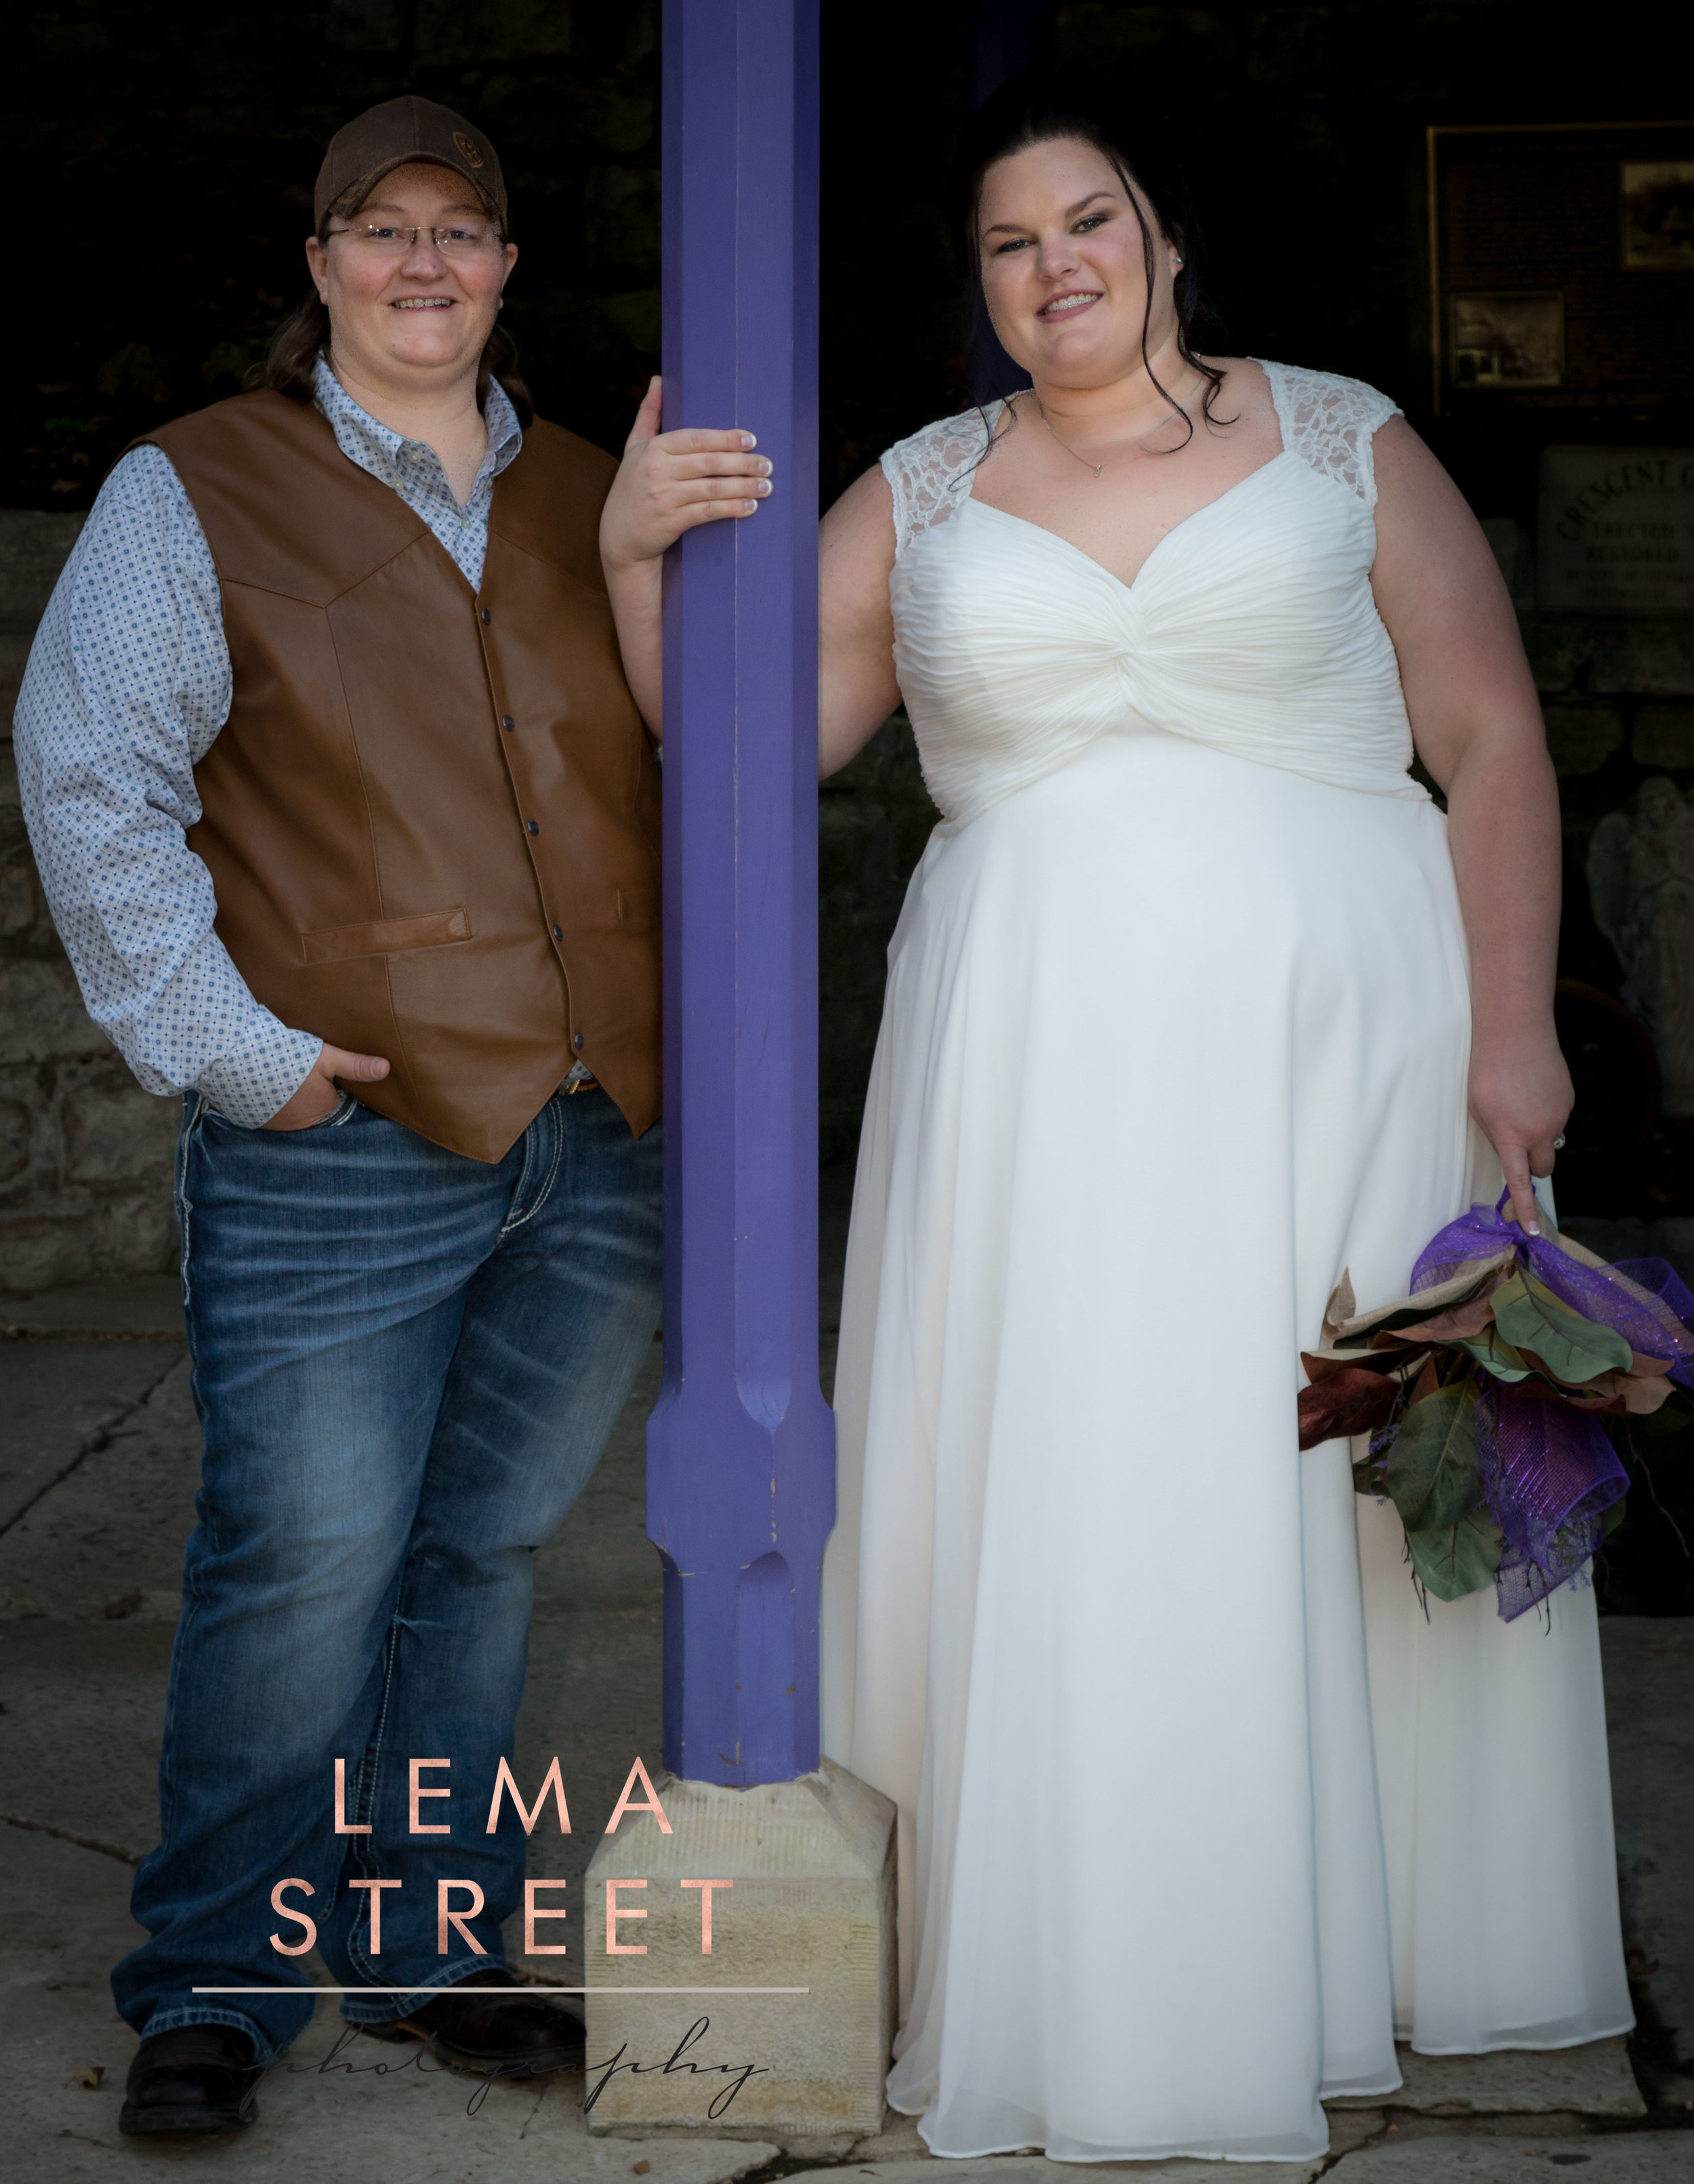 2018 Wedding Julie_Heather (9 of 15).jpg